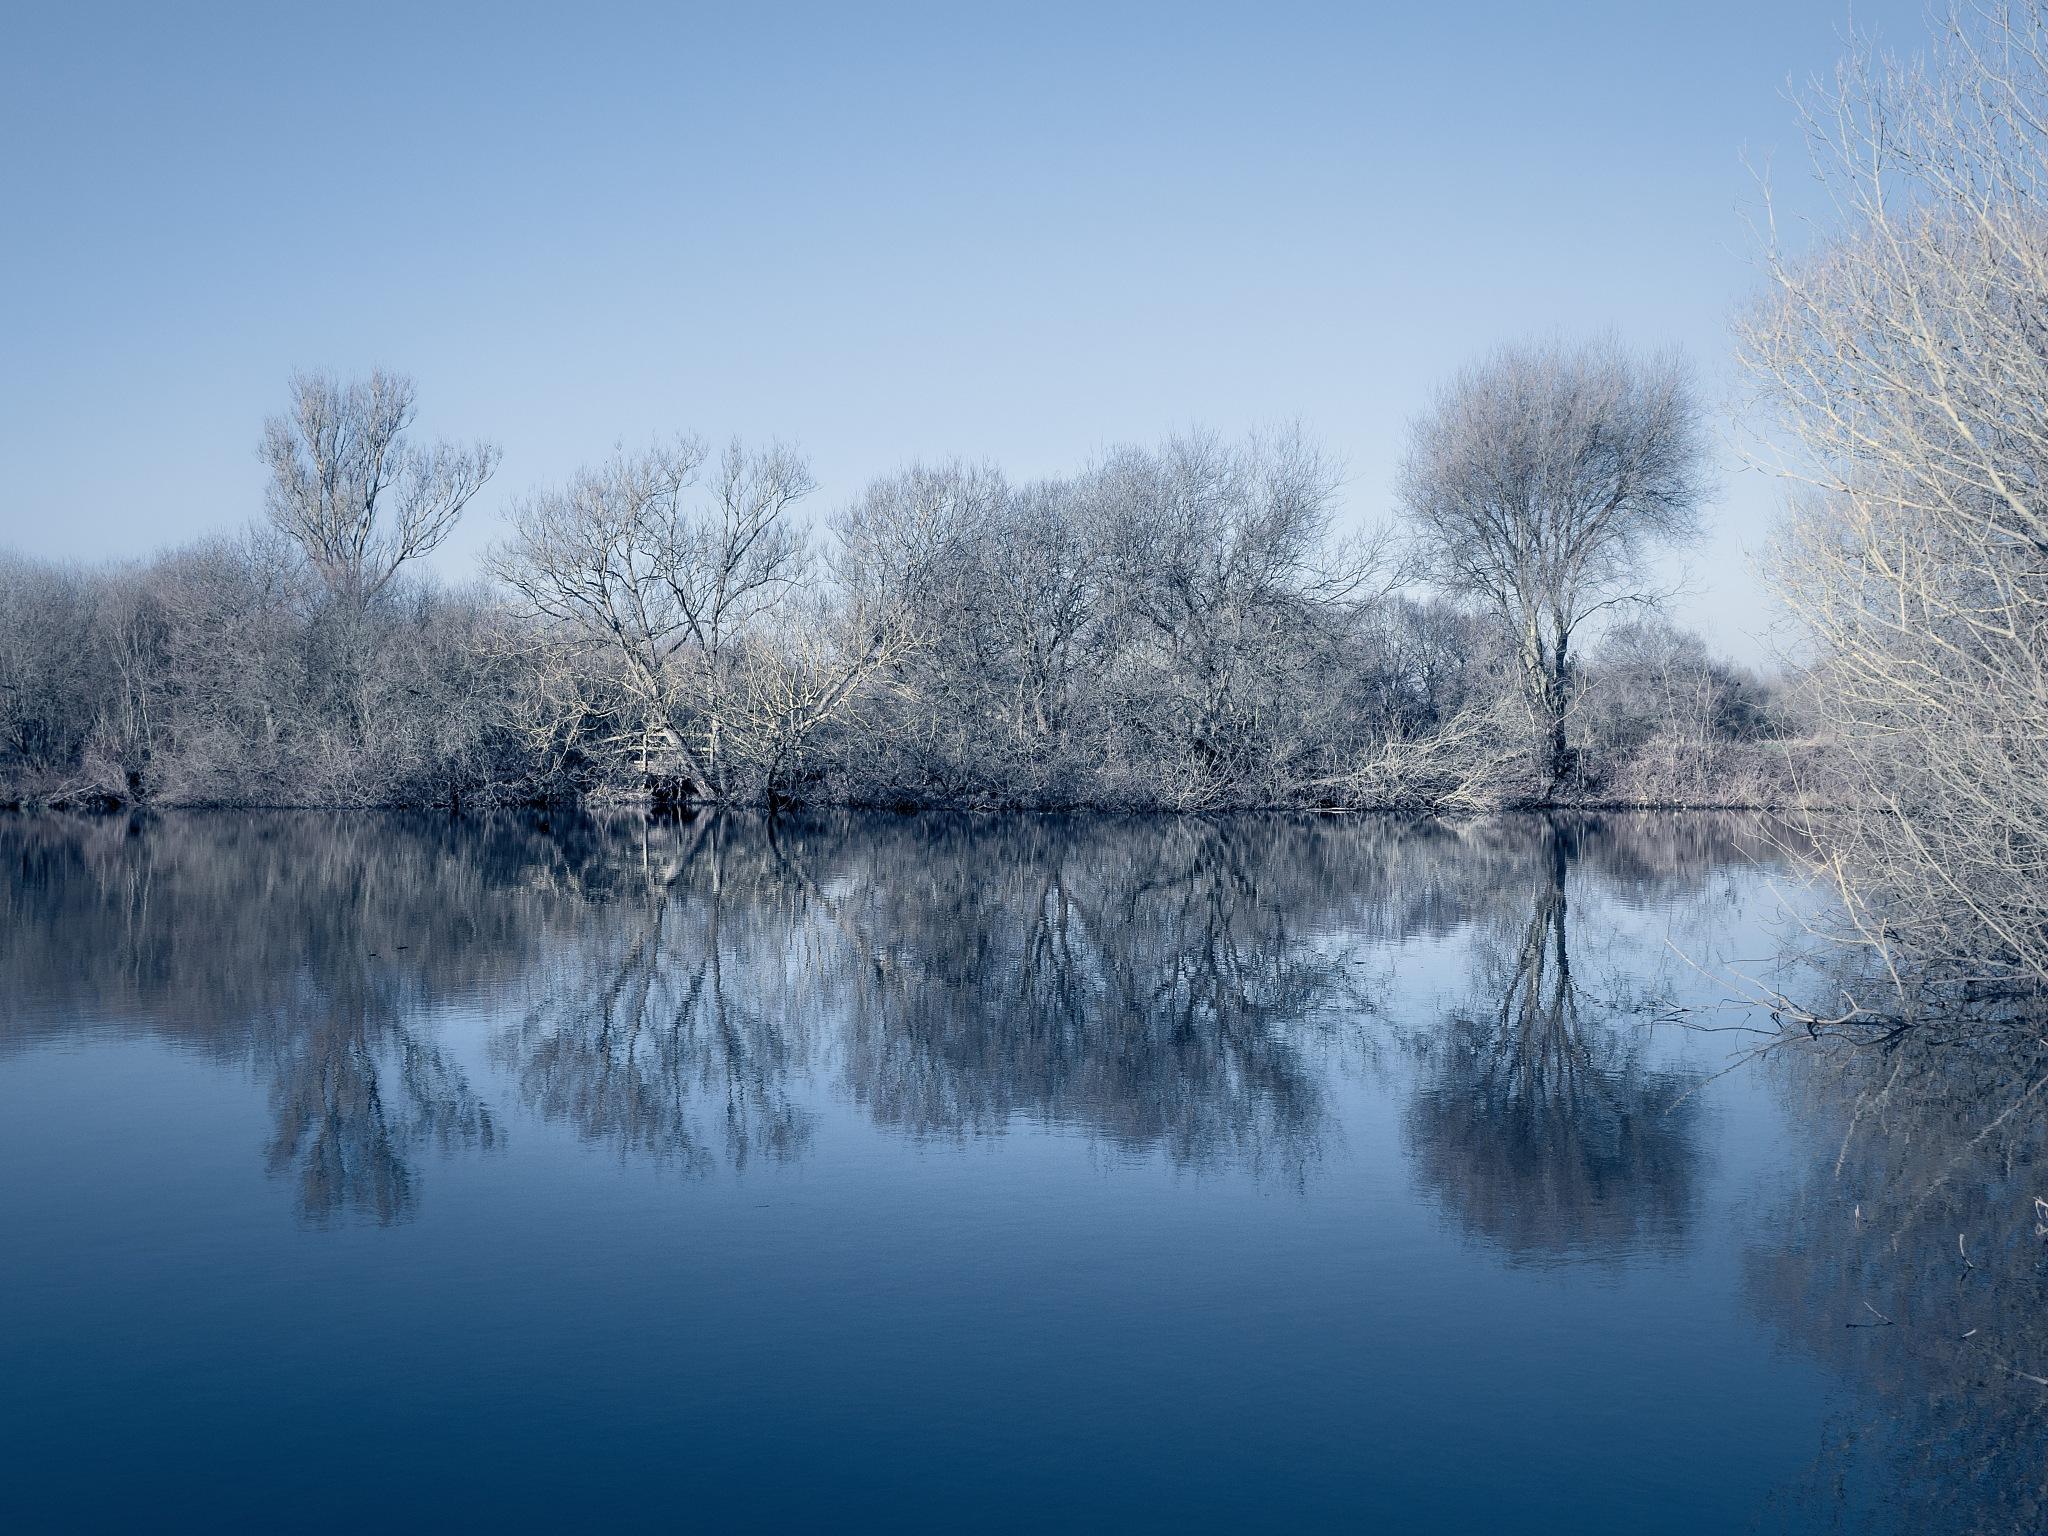 Winter Reflections by Sarah Walters